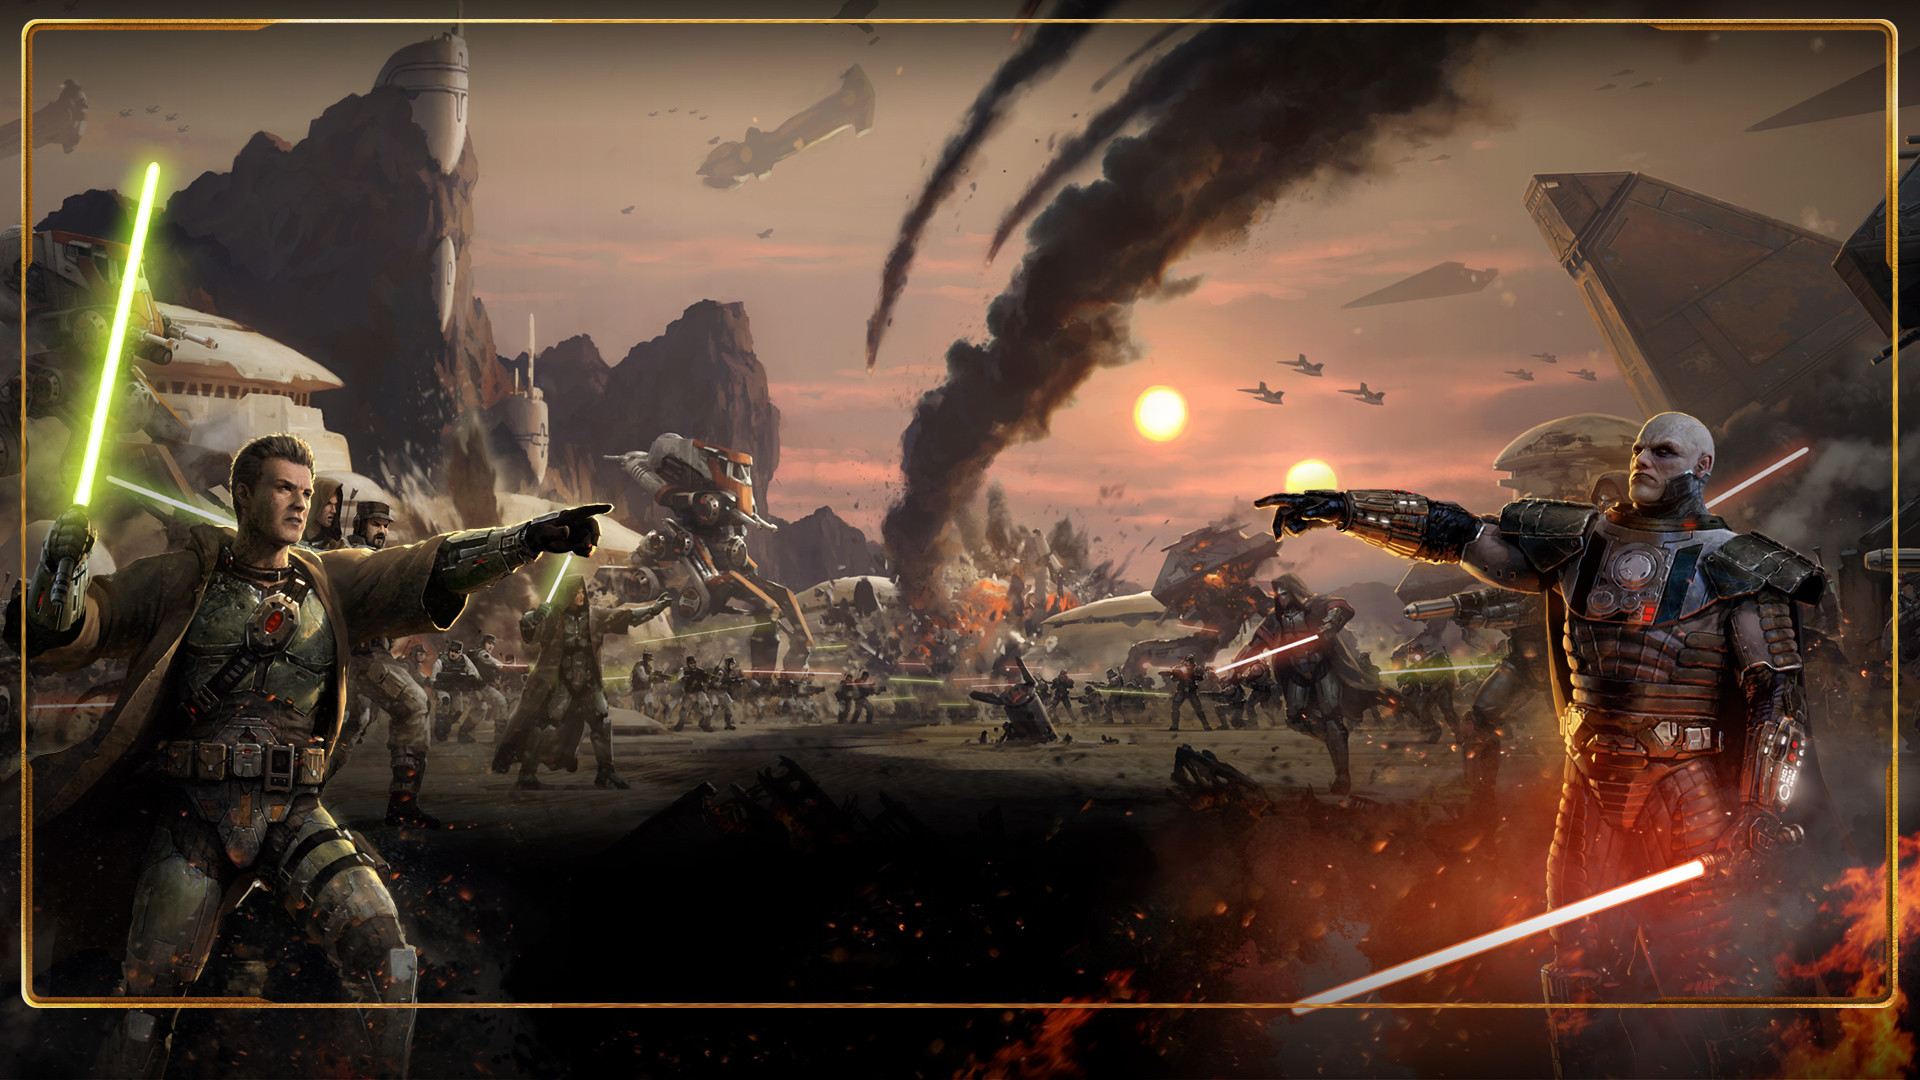 View Star Wars The Old Republic Wallpaper 2560x1440 Png